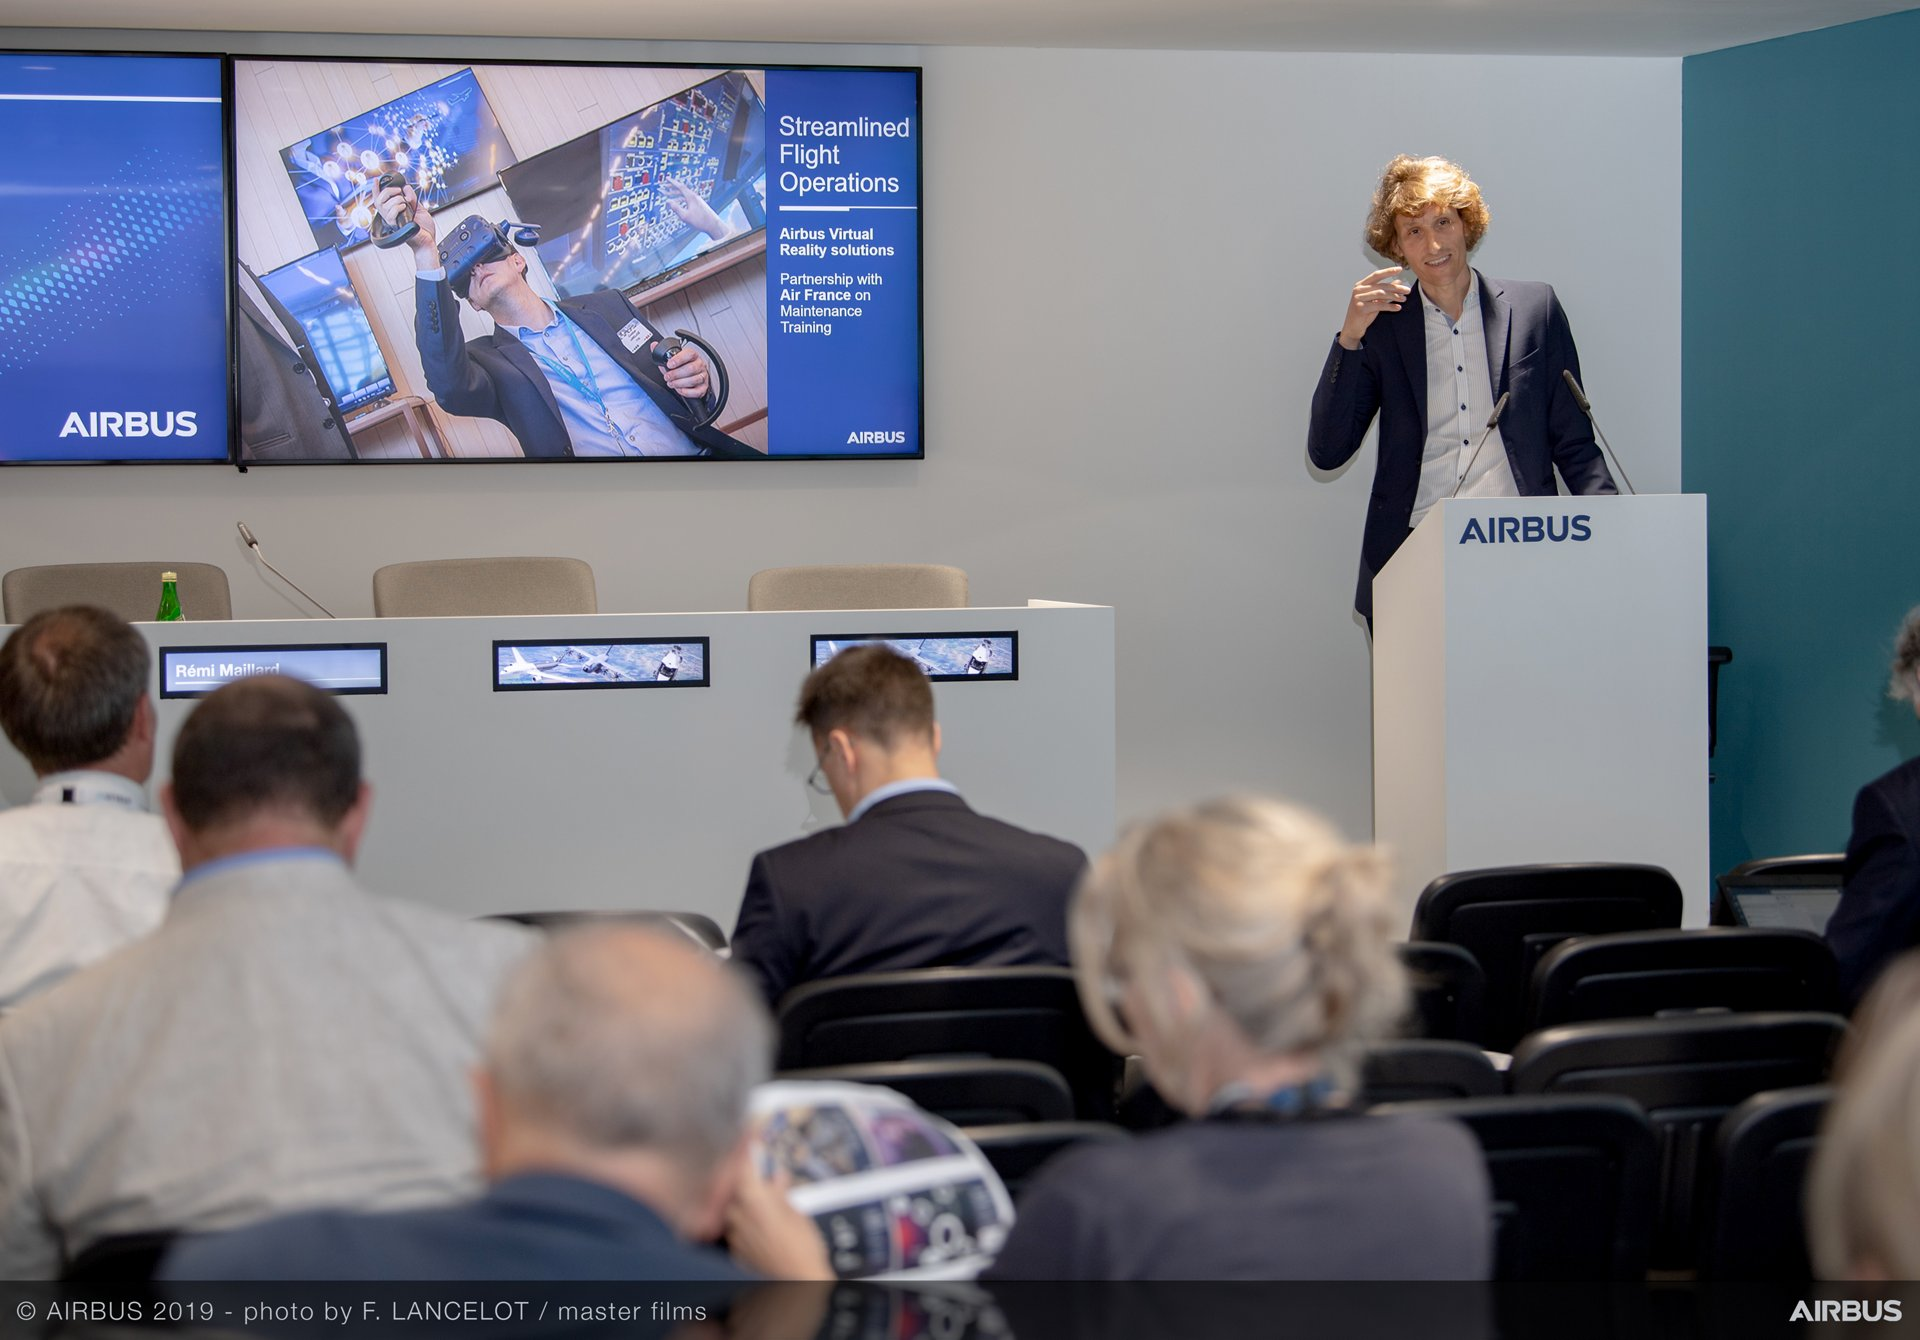 Airbus Services Media briefing at PAS 2019 - Day 3  Rémi Maillard, Head of Services by Airbus; speech